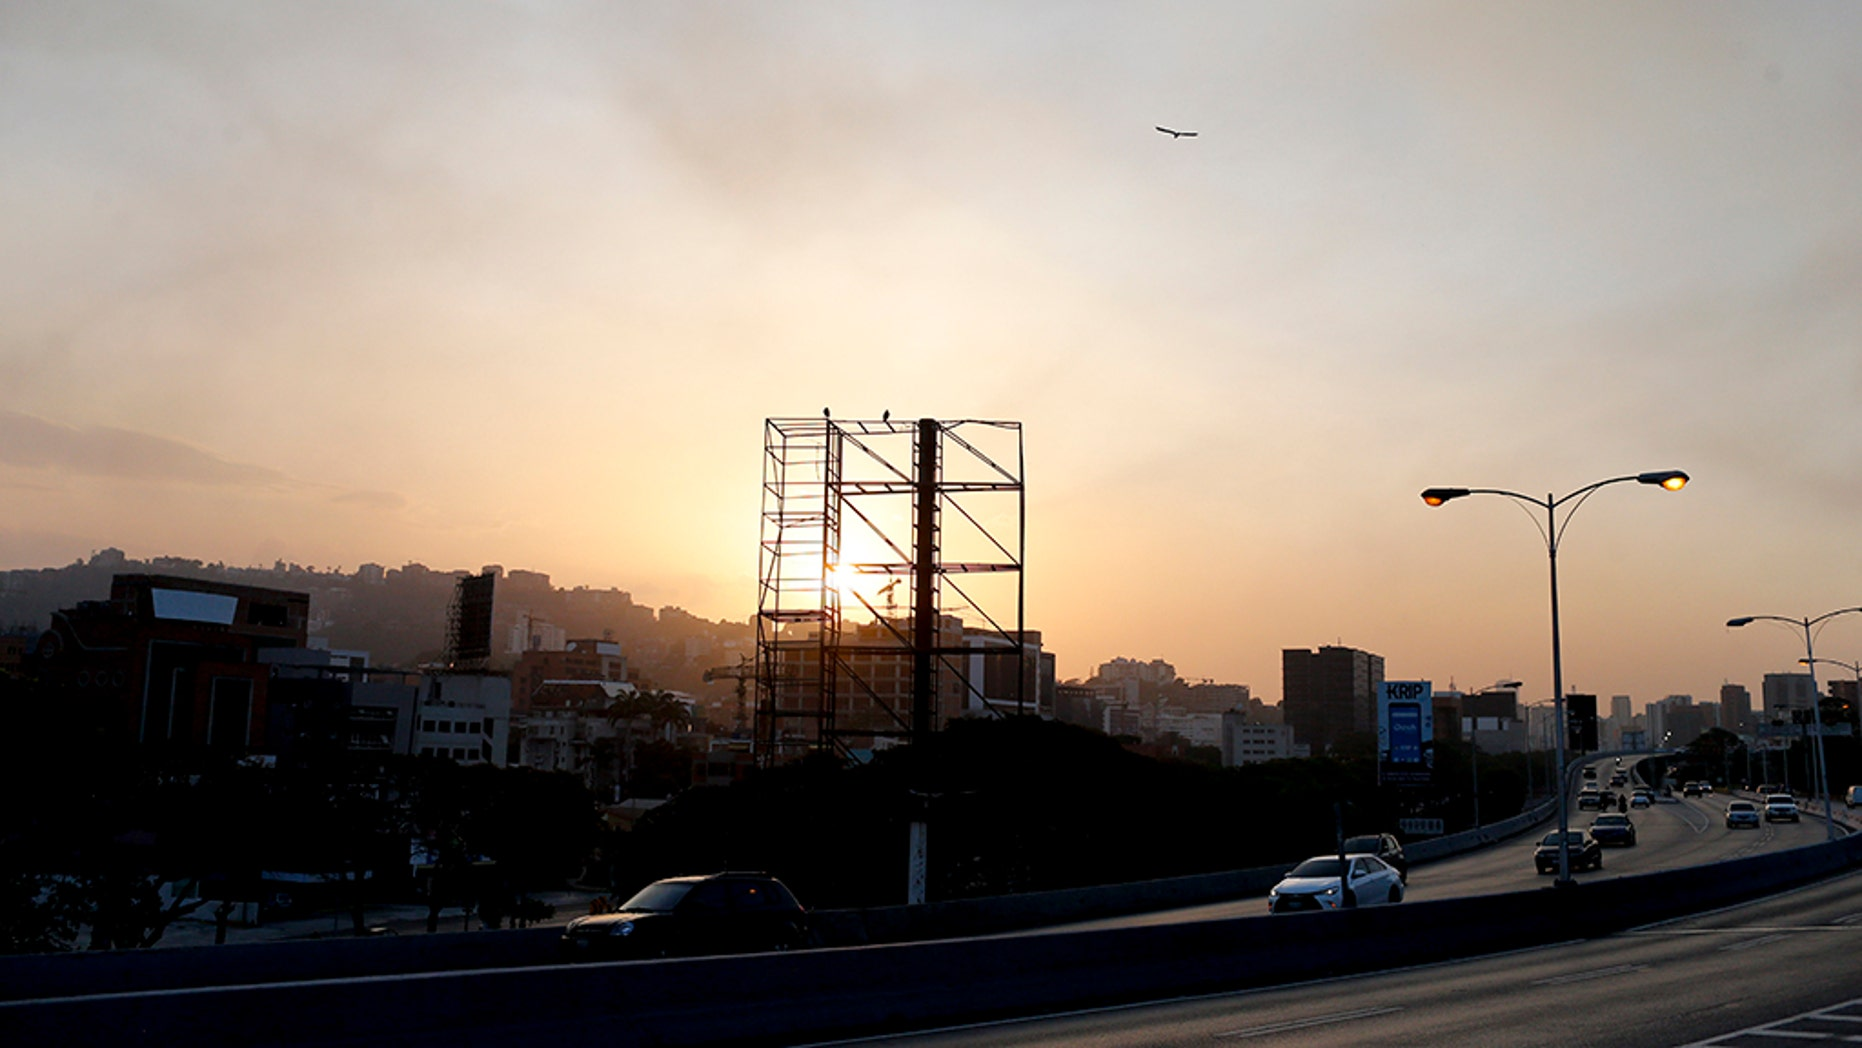 A billboard stands empty above a highway with no traffic as the sun sets in Caracas, Venezuela, Monday, March 18, 2019. When the sun goes down in Venezuela's capital, the once-thriving metropolis empties under darkness. (AP Photo/Natacha Pisarenko)